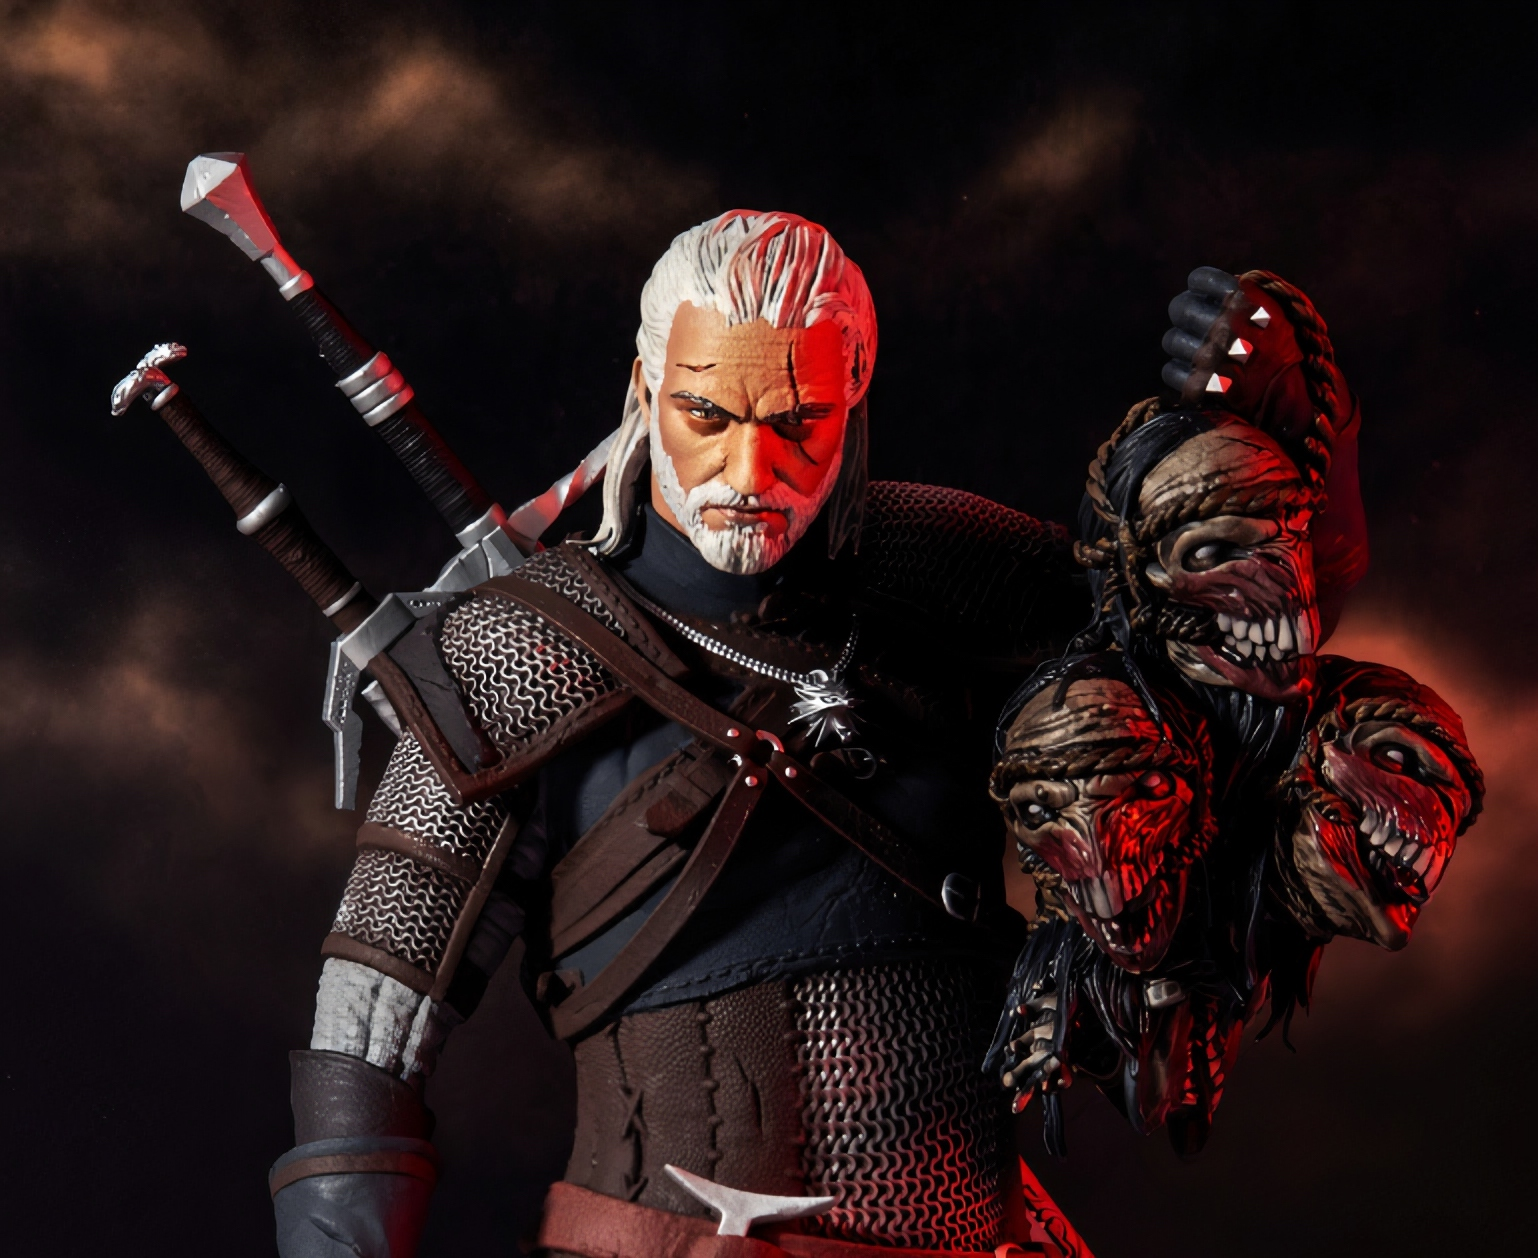 McFarlane Toys and CD PROJECT RED team up for 'The Witcher' action figures